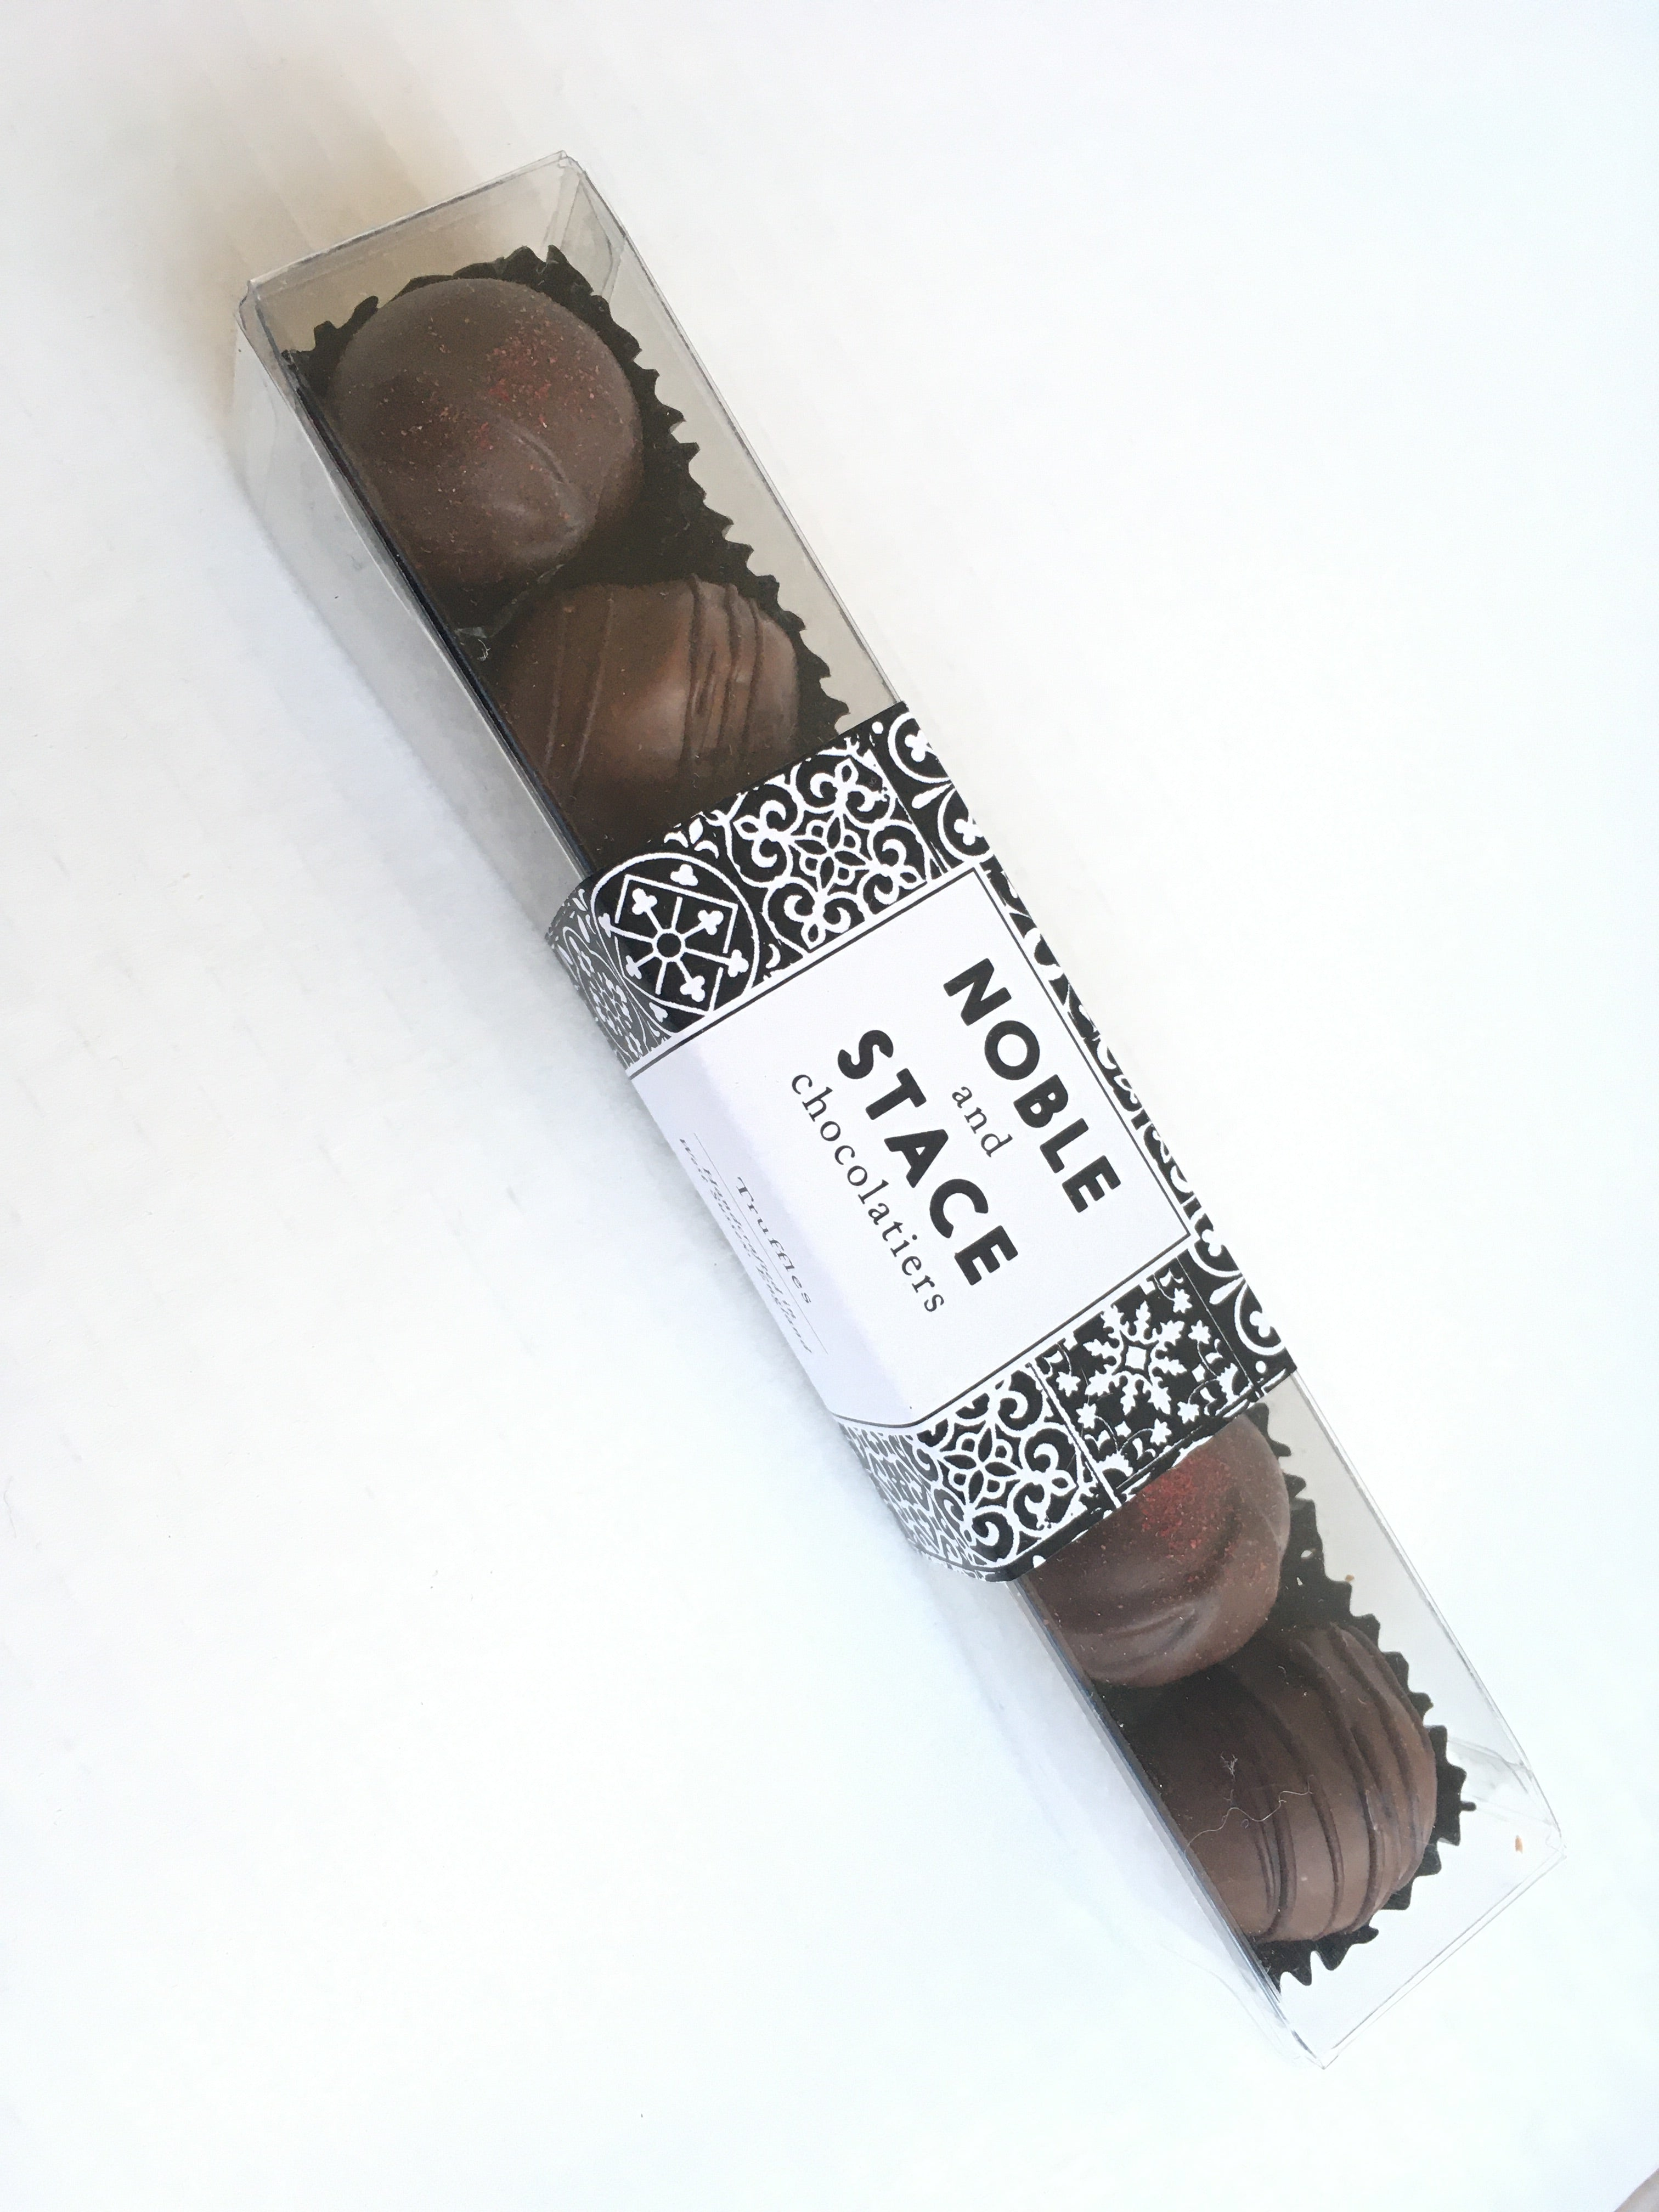 Noble & Stace English Sparkling Wine Chocolate Truffles - Hawkins Bros. Fine English Wines